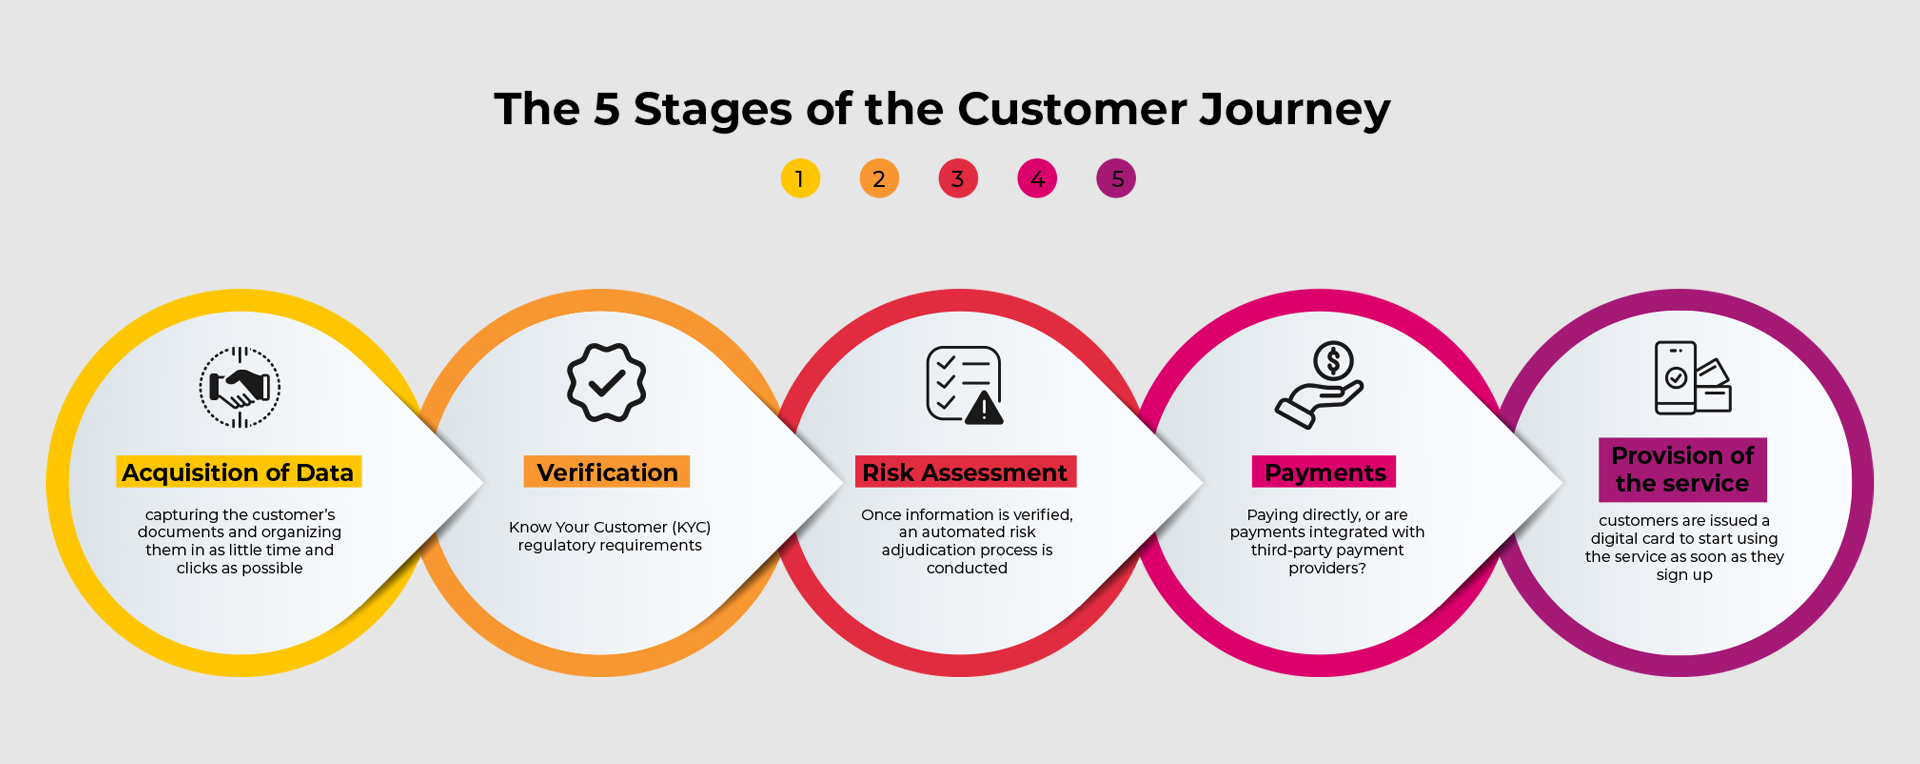 Digital Onboarding - The 5 Stages of the Customer Journey